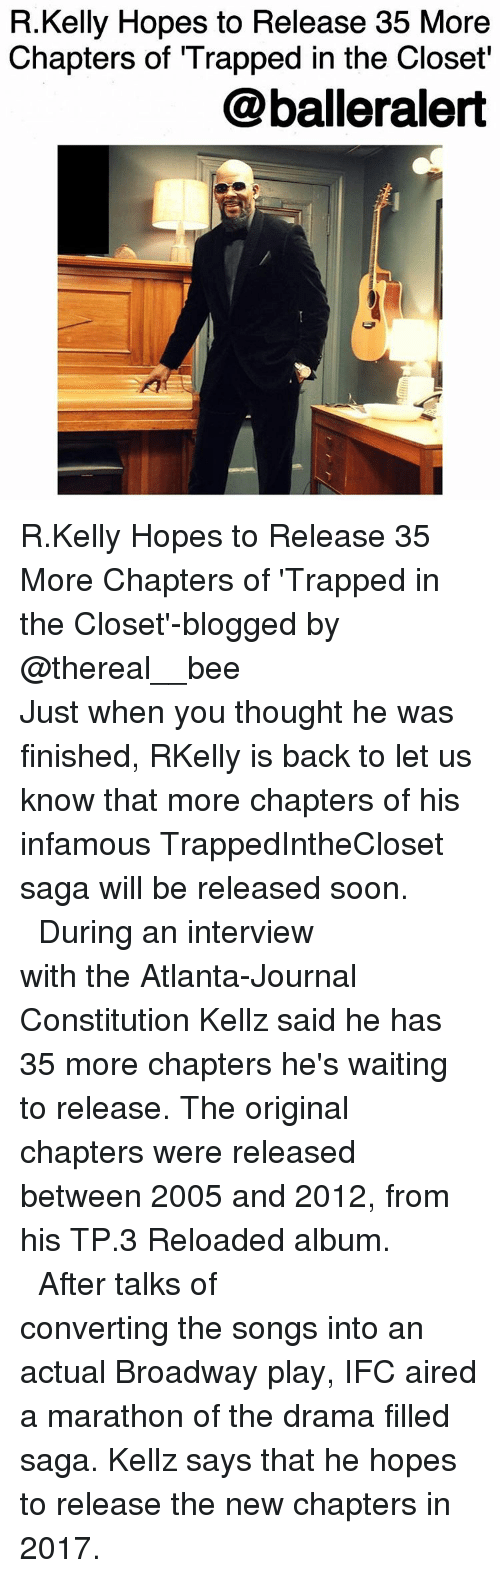 """Kellie: R.Kelly Hopes to Release 35 More  Chapters of Trapped in the Closet""""  @balleralert R.Kelly Hopes to Release 35 More Chapters of 'Trapped in the Closet'-blogged by @thereal__bee ⠀⠀⠀⠀⠀⠀⠀⠀⠀ ⠀⠀⠀⠀⠀⠀⠀⠀⠀ Just when you thought he was finished, RKelly is back to let us know that more chapters of his infamous TrappedIntheCloset saga will be released soon. ⠀⠀⠀⠀⠀⠀⠀⠀⠀ ⠀⠀⠀⠀⠀⠀⠀⠀⠀ During an interview with the Atlanta-Journal Constitution Kellz said he has 35 more chapters he's waiting to release. The original chapters were released between 2005 and 2012, from his TP.3 Reloaded album. ⠀⠀⠀⠀⠀⠀⠀⠀⠀ ⠀⠀⠀⠀⠀⠀⠀⠀⠀ After talks of converting the songs into an actual Broadway play, IFC aired a marathon of the drama filled saga. Kellz says that he hopes to release the new chapters in 2017."""